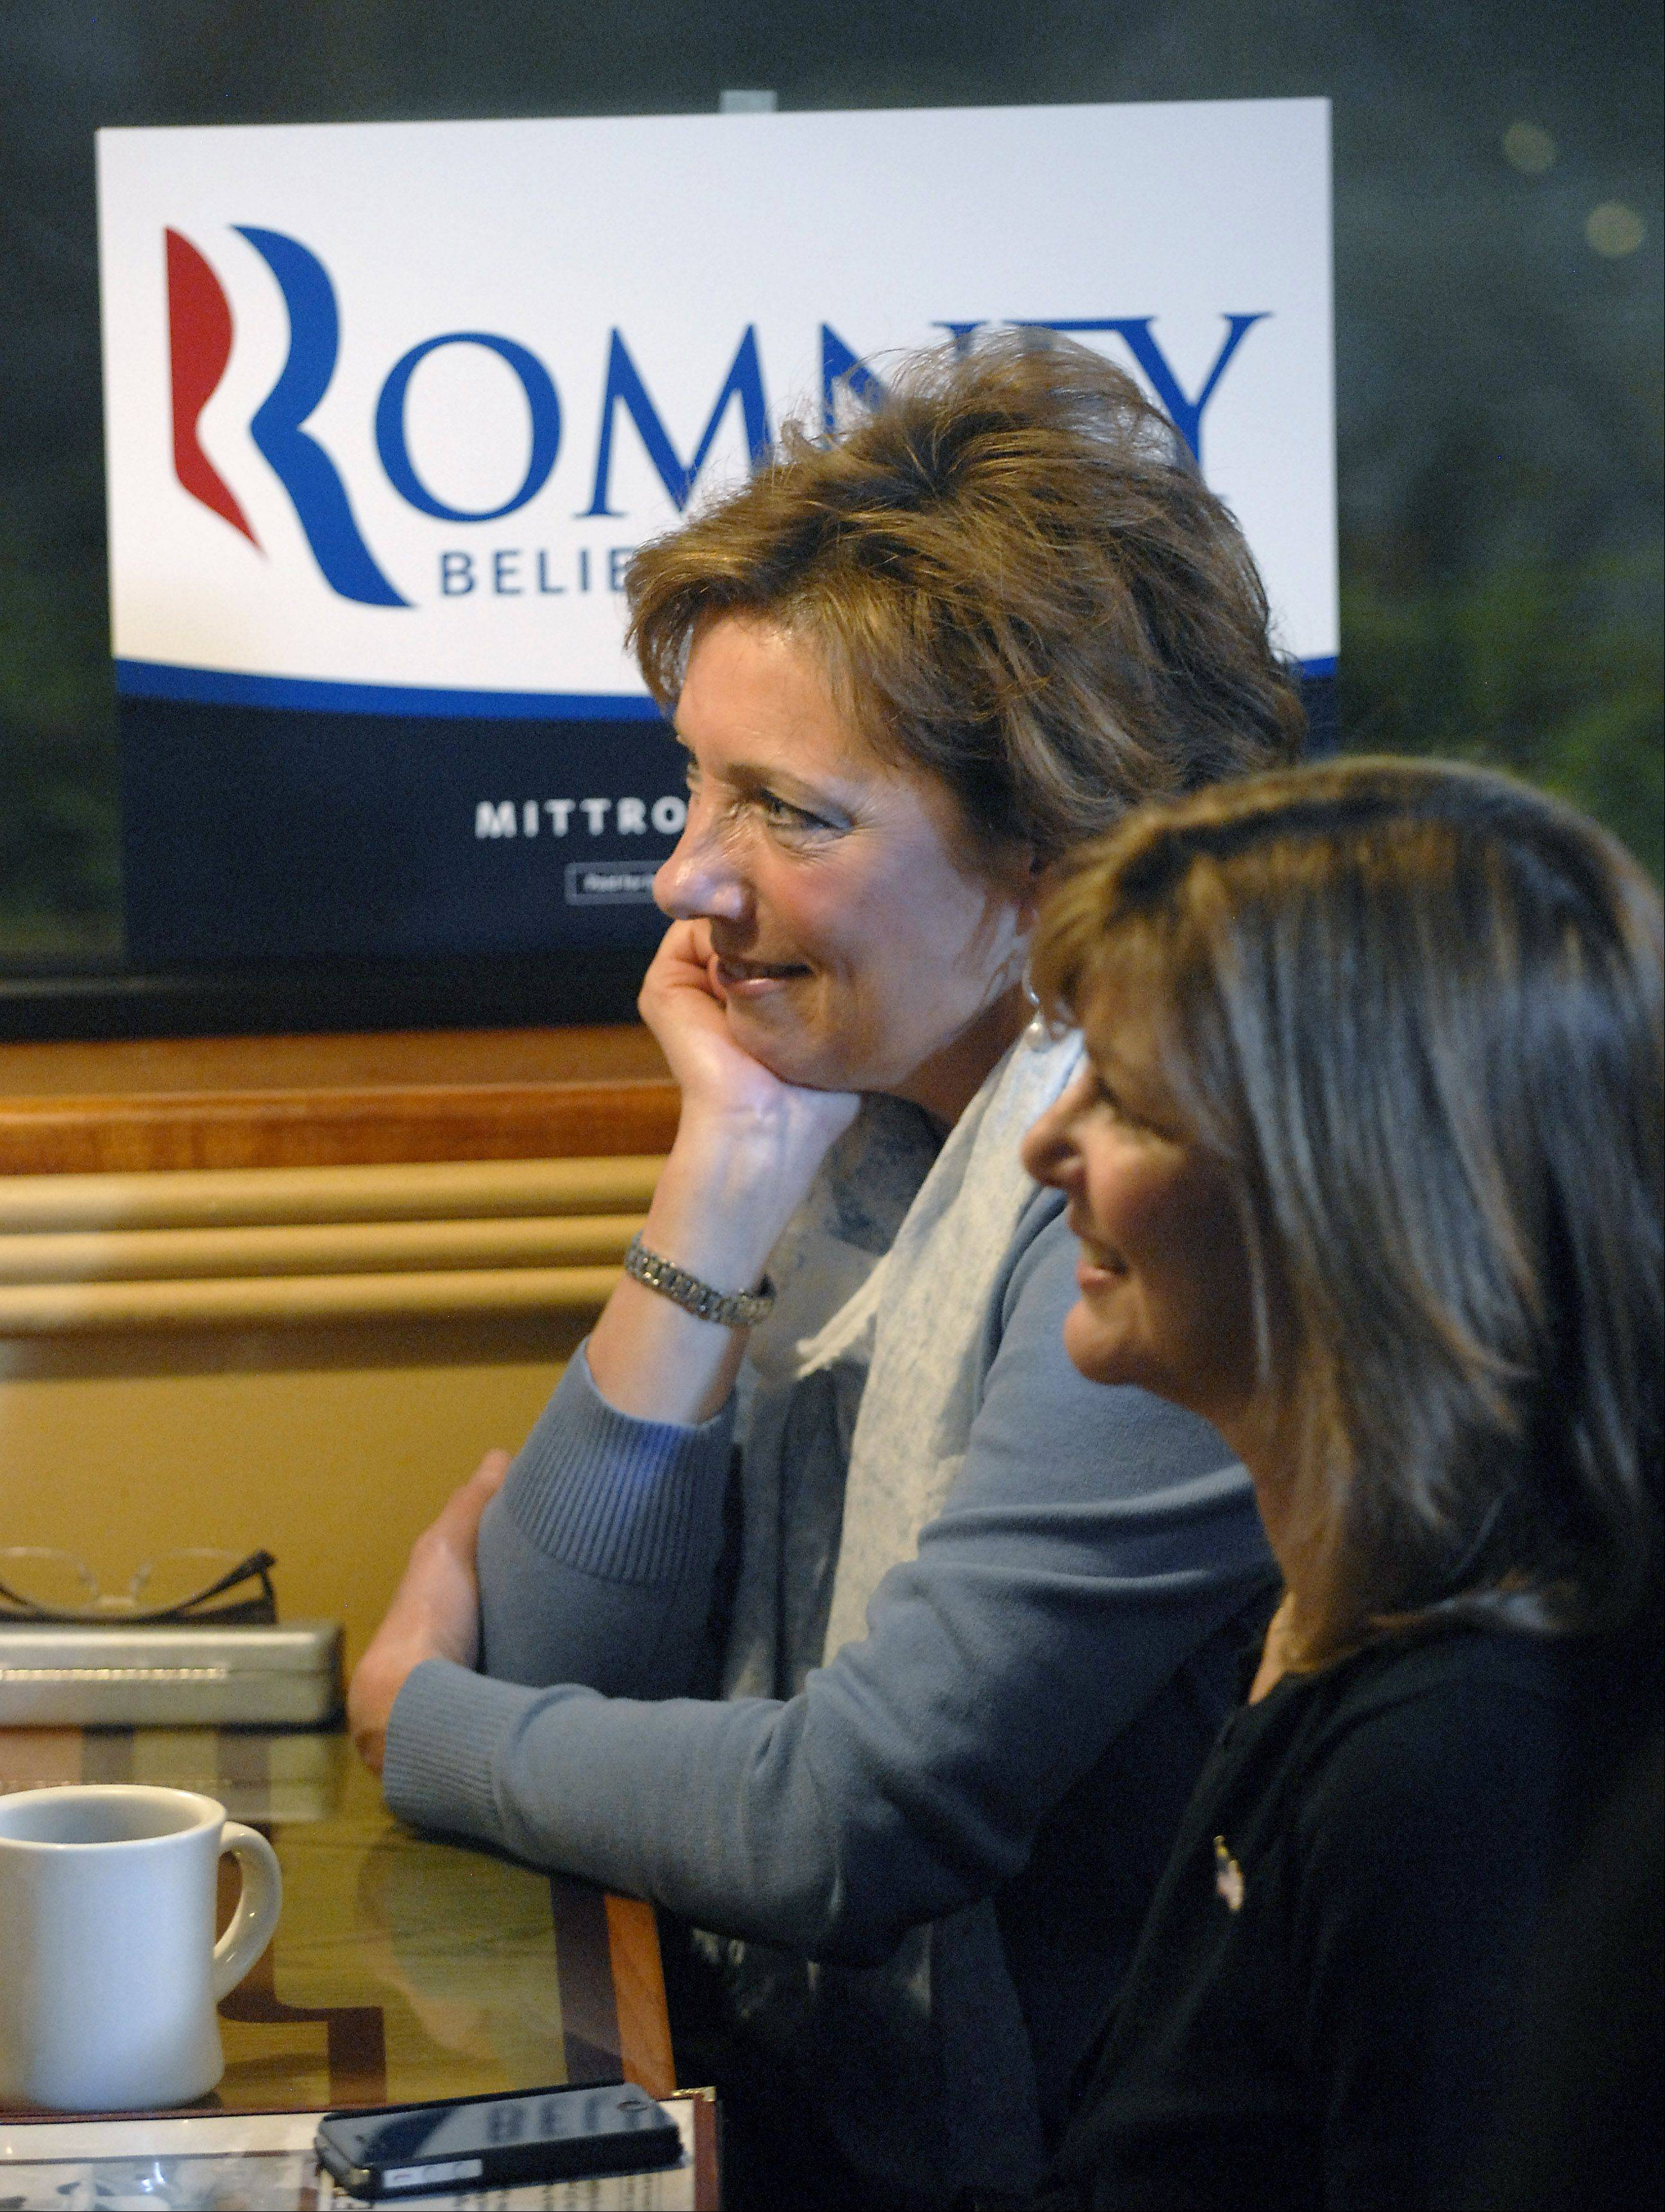 Debbie Weisshappel, left, and Kim Pesavento, both of Barrington, wait for GOP Presidential candidate Mitt Romney early Friday morning at the Pancakes Eggcetera restaurant in Rosemont.